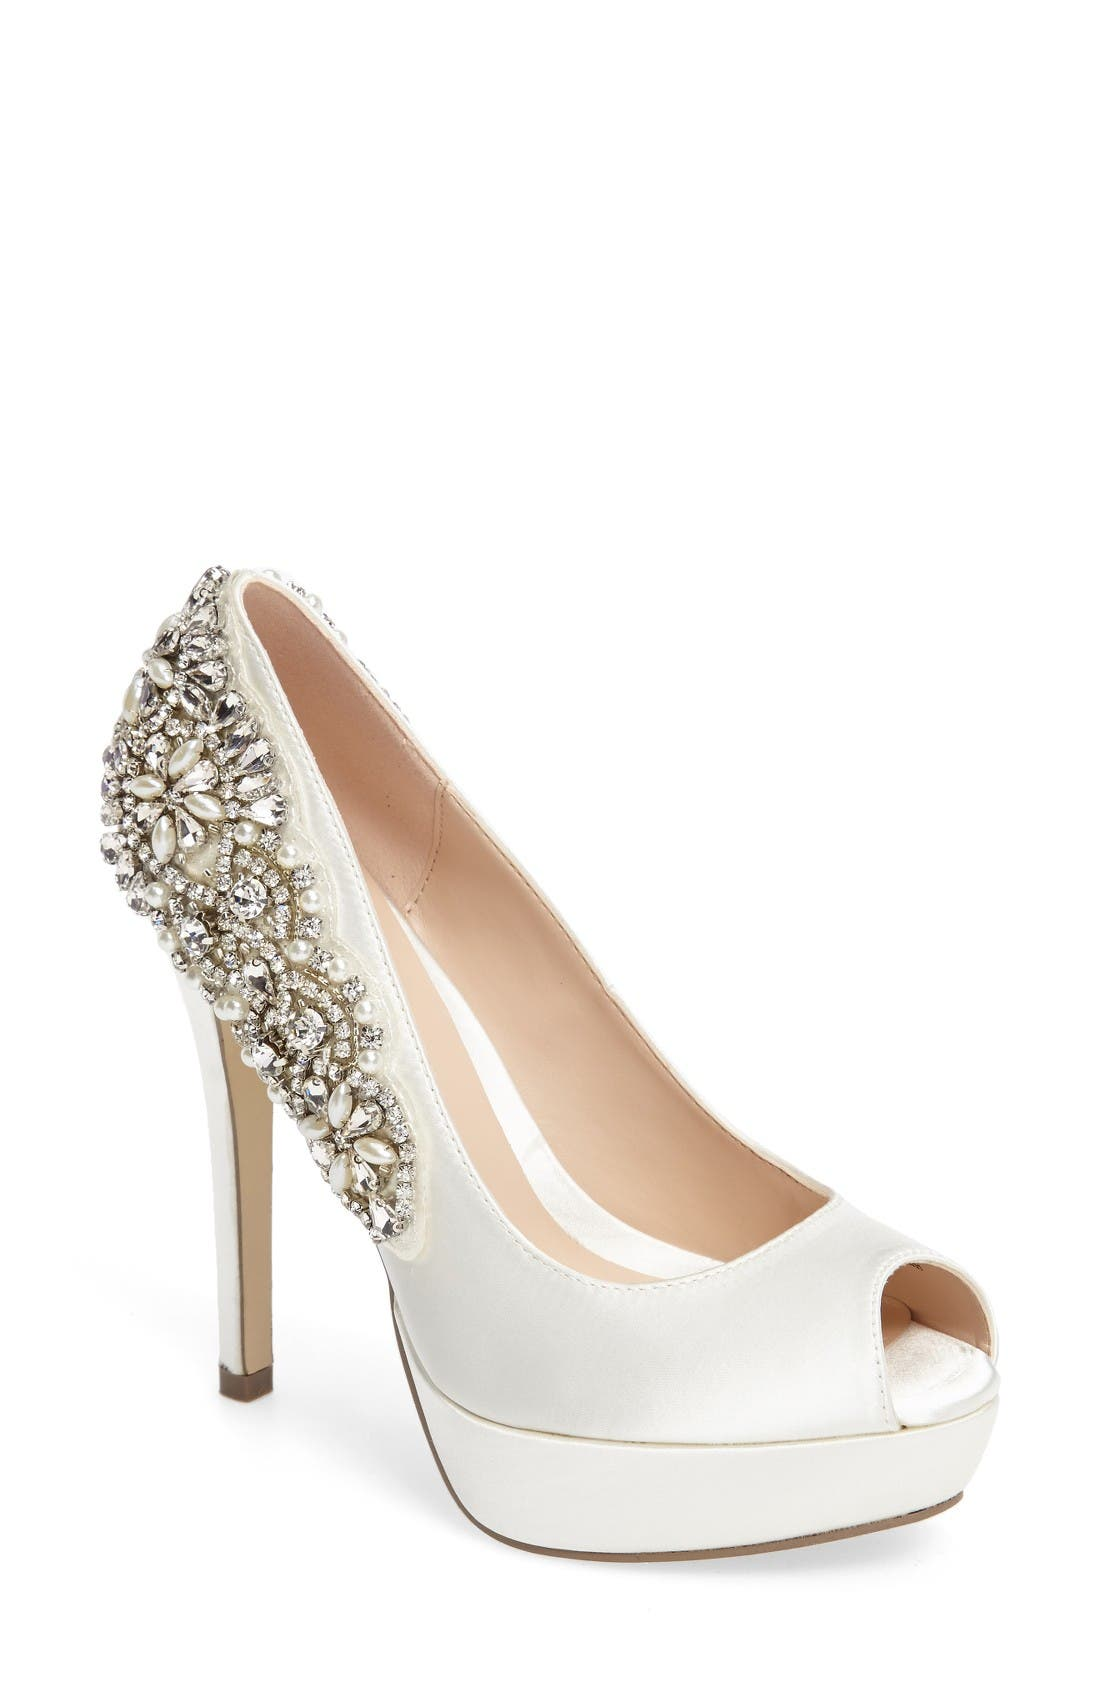 Main Image - pink paradox london Indulgence Peep Toe Pump (Women)